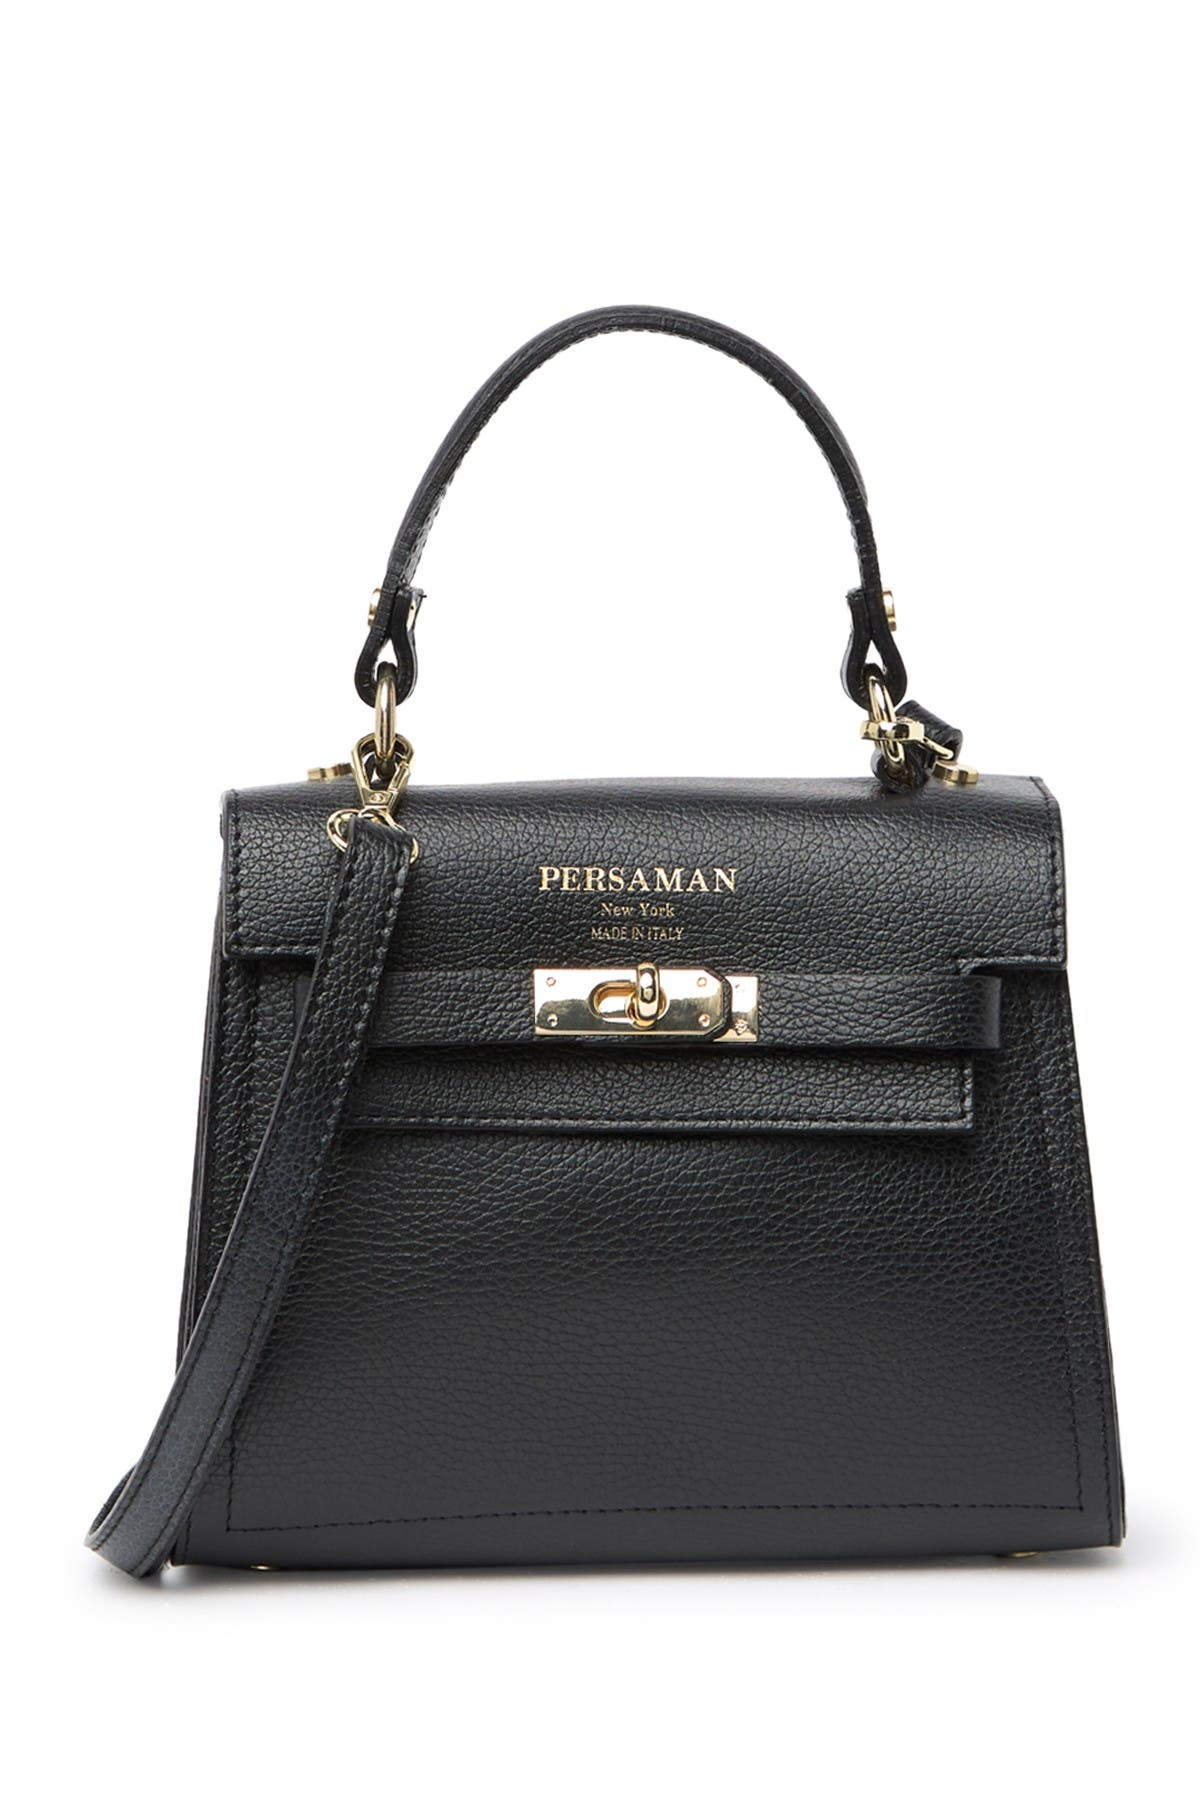 Image of Persaman New York Claire Leather Shoulder Bag